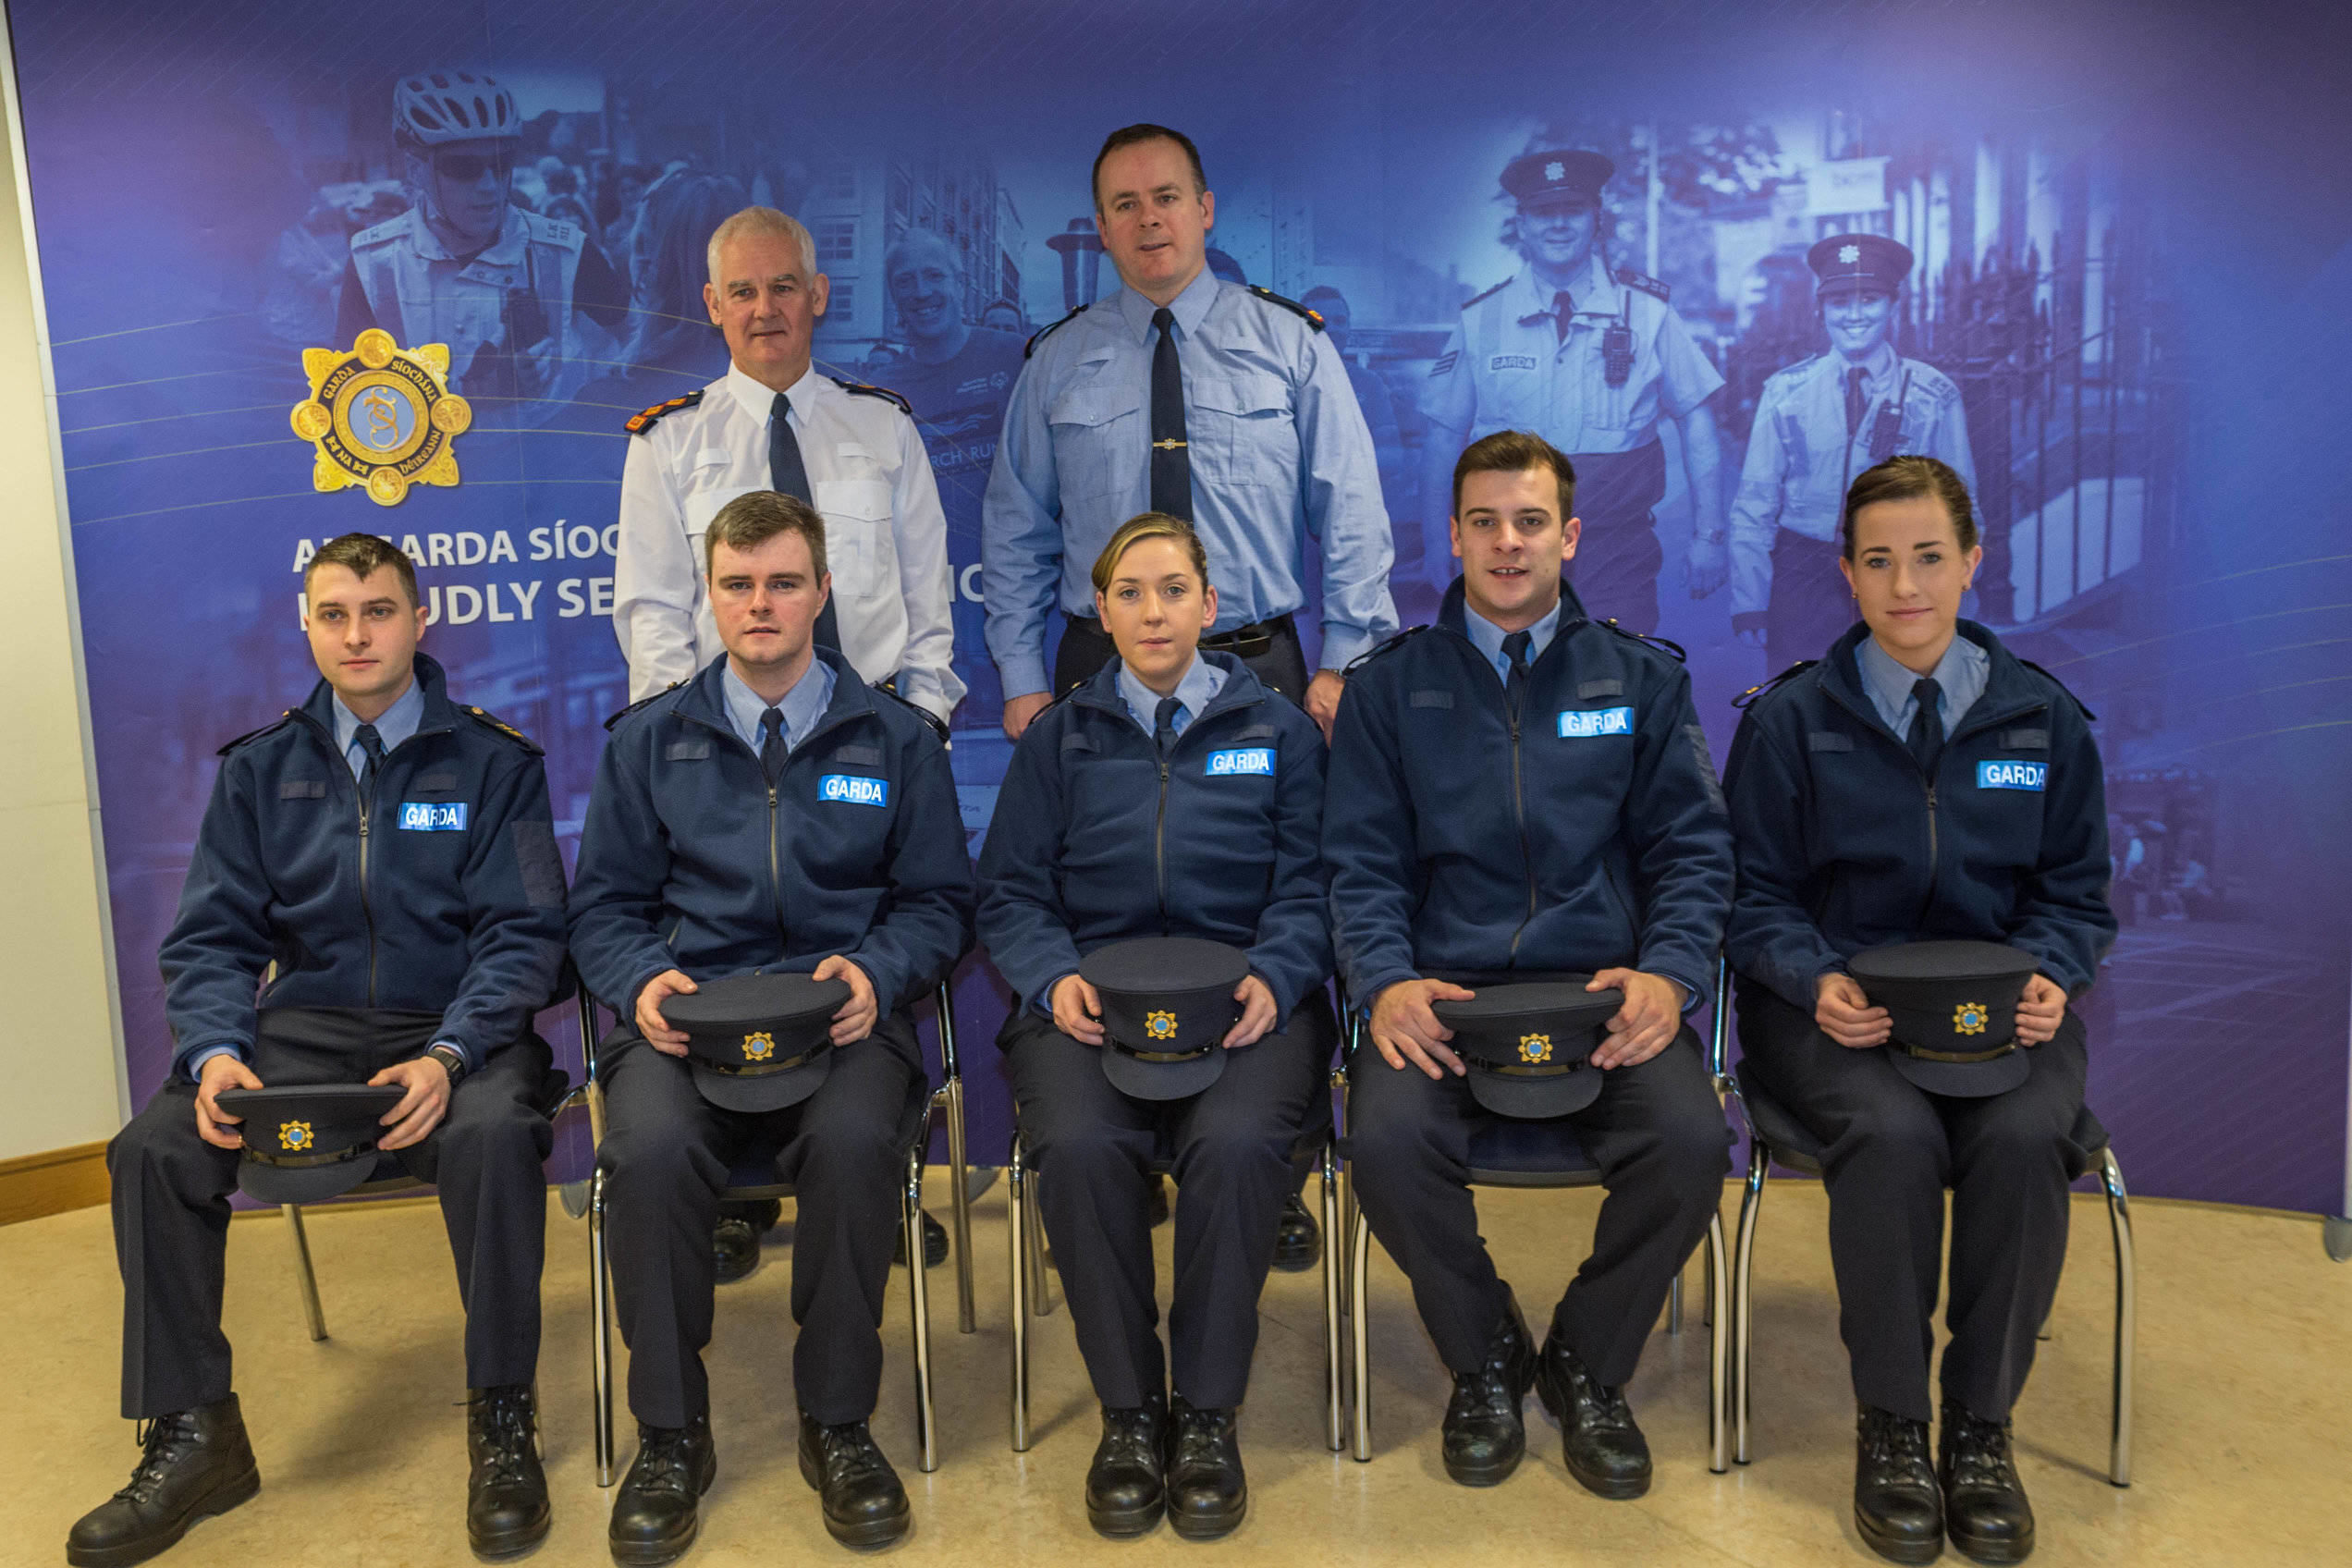 Limerick City welcomes eleven Probationer Garda at Henry Street Station